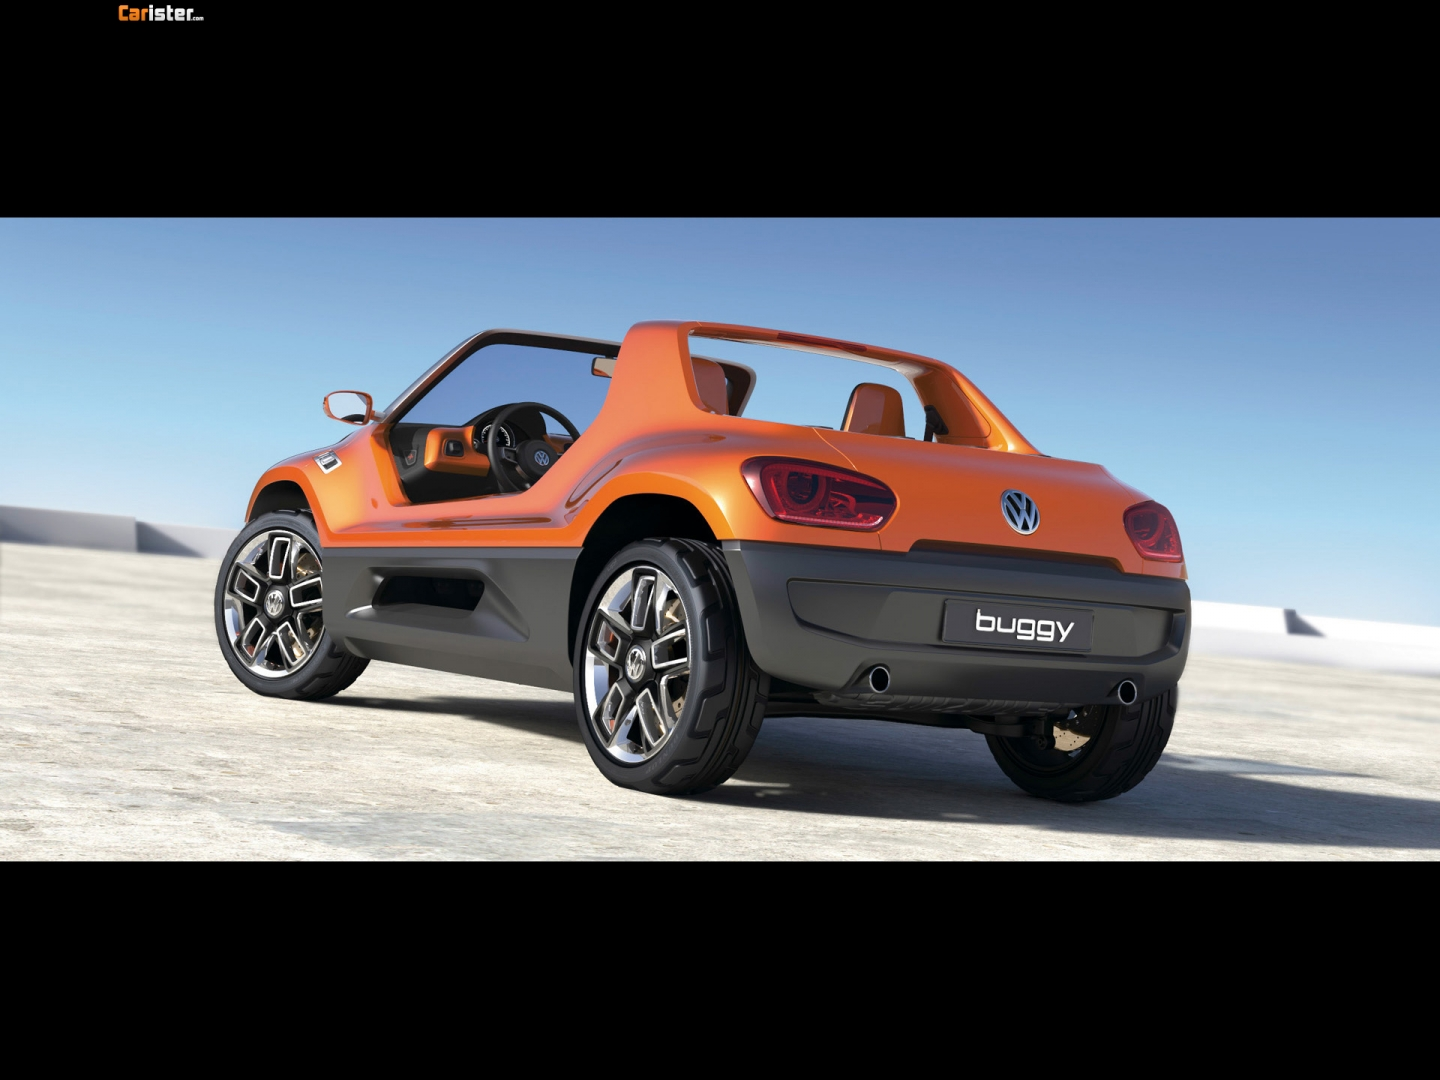 Volkswagen Buggy Up Concept 2011 - Photo 07 - Taille: 1440x1080